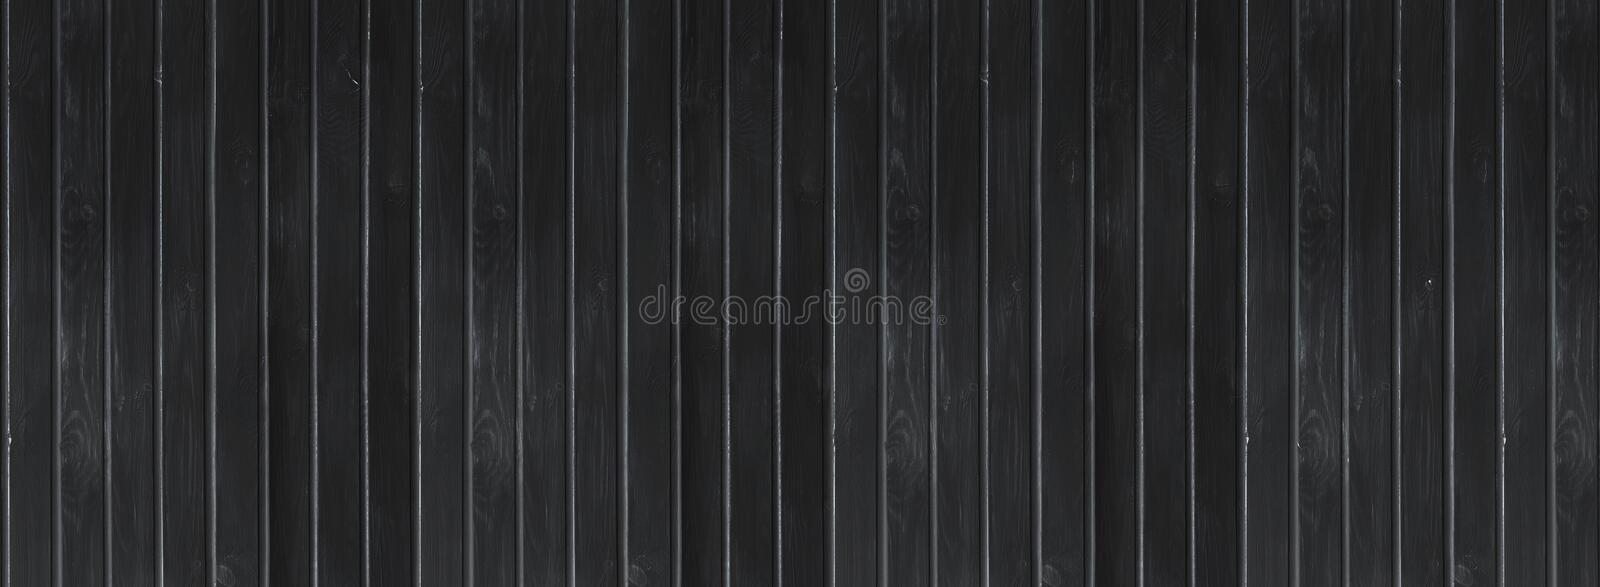 Black wood vintage or grungy background. Wooden old texture as a retro pattern layout. royalty free stock photos